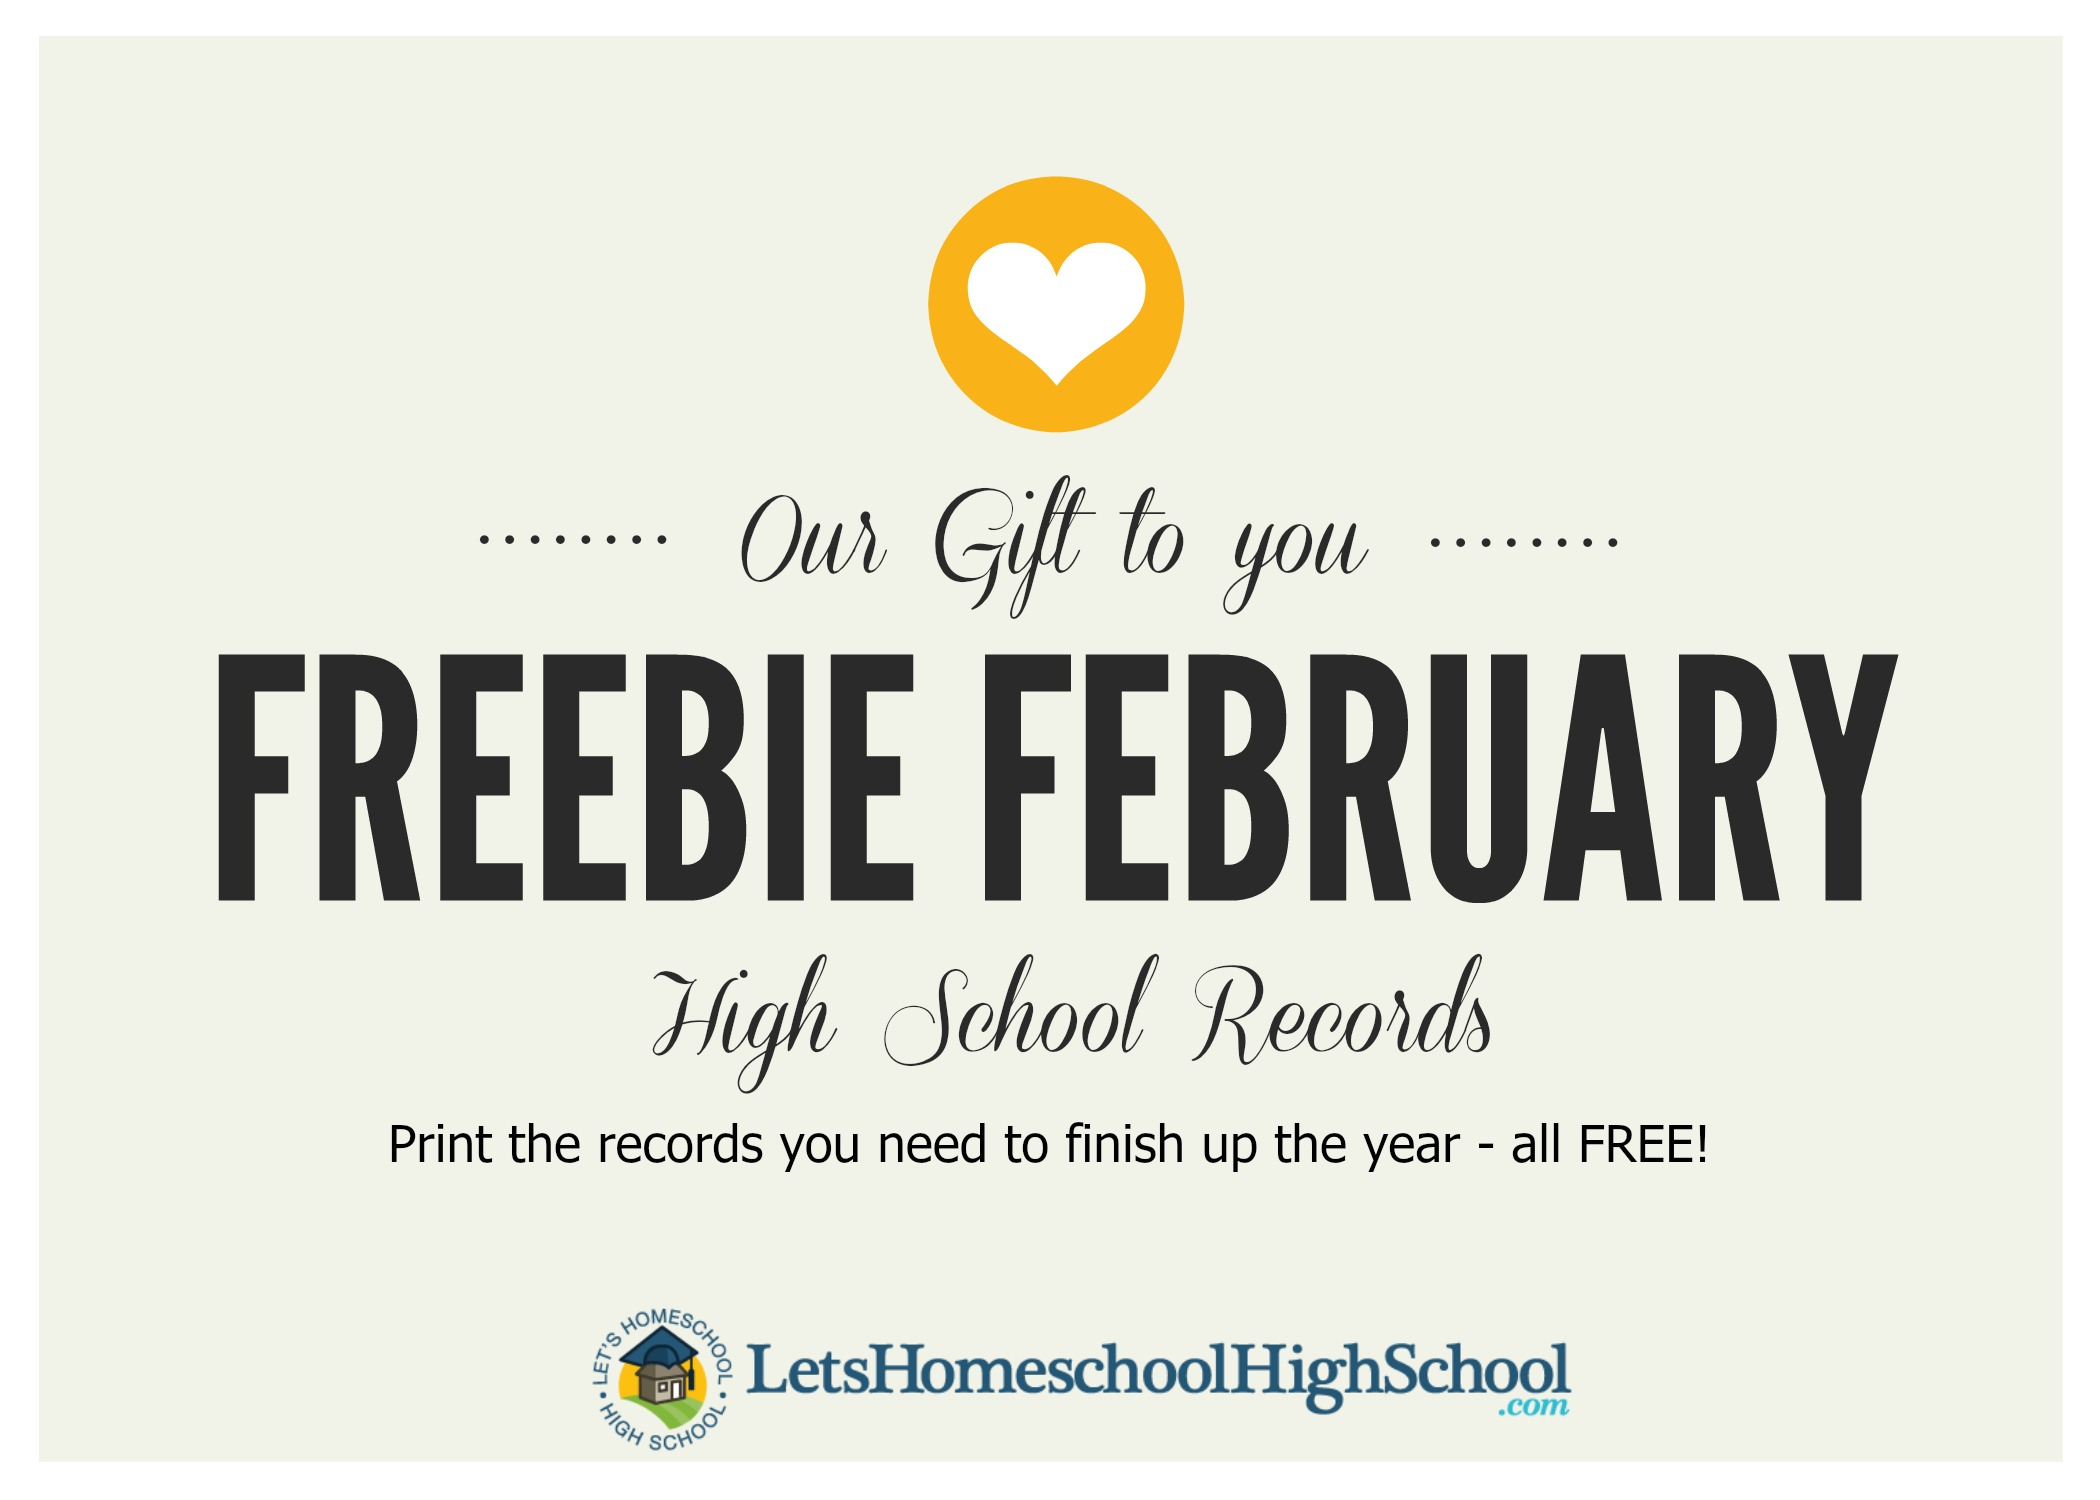 Free High School Downloads